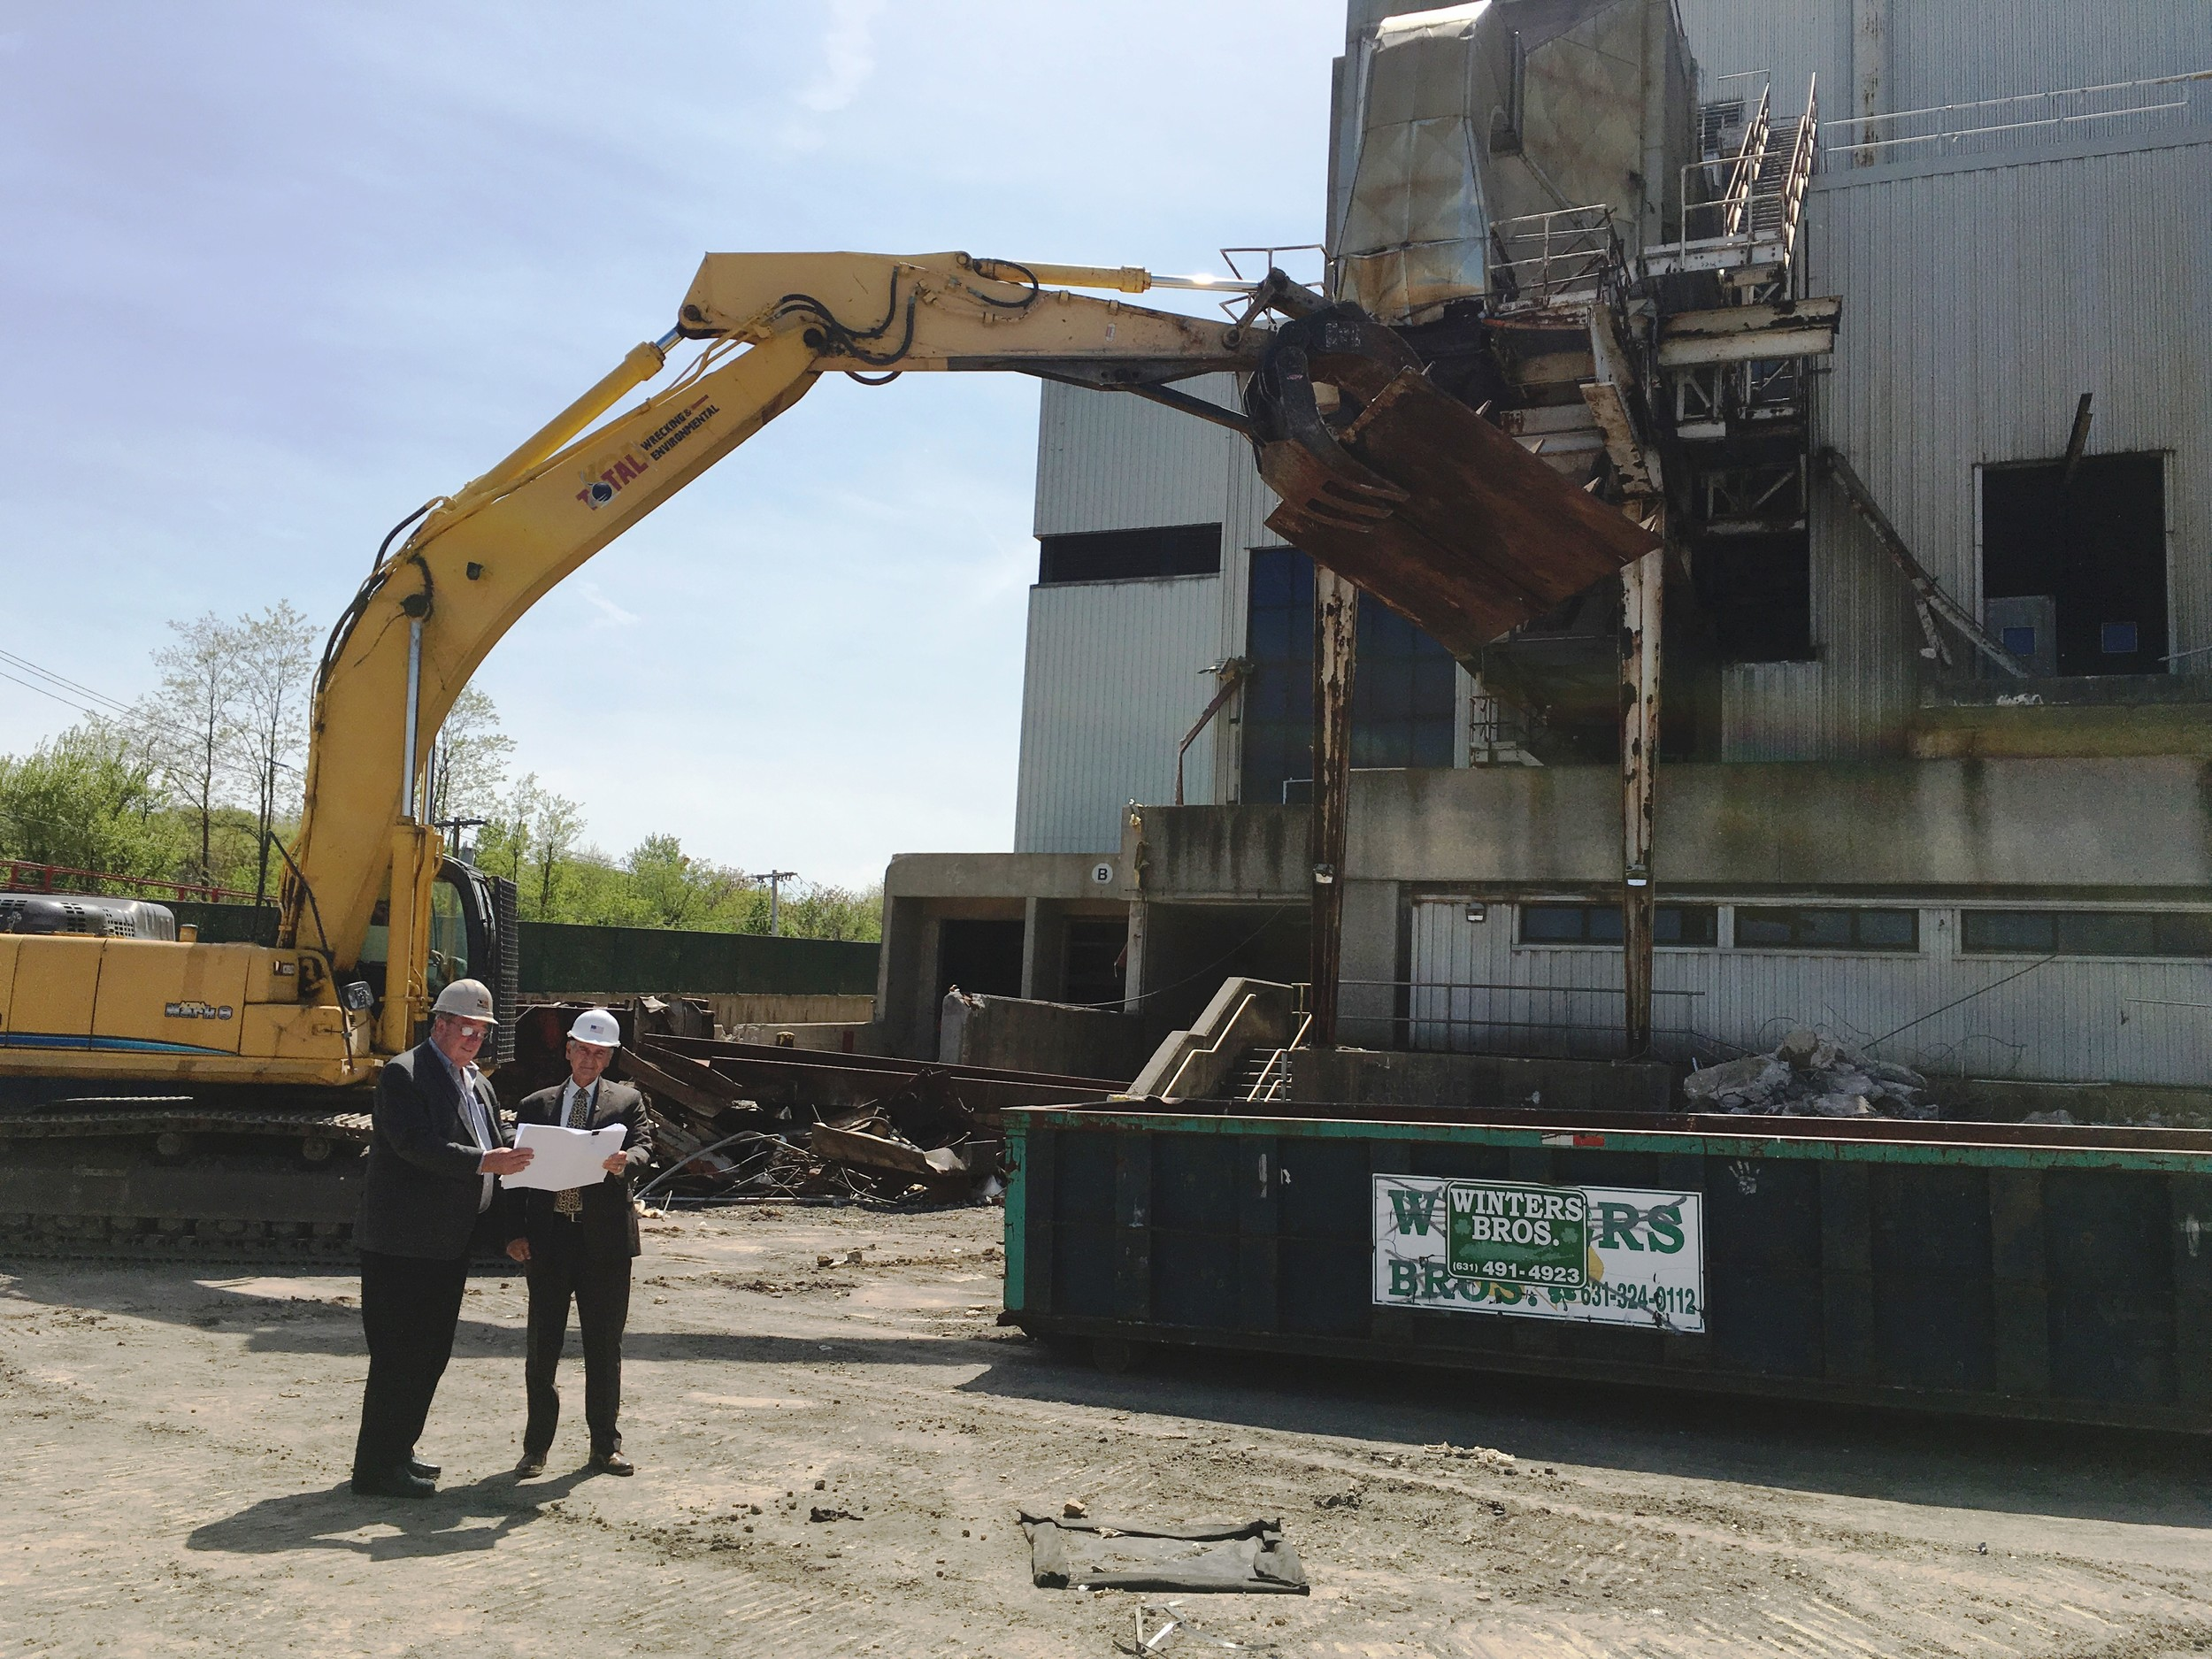 Glen Cove DPW Director Jim Byrne, left, and Mayor Spinello survey the start of the demolition of the Glen Cove Incinerator on Morris Avenue.